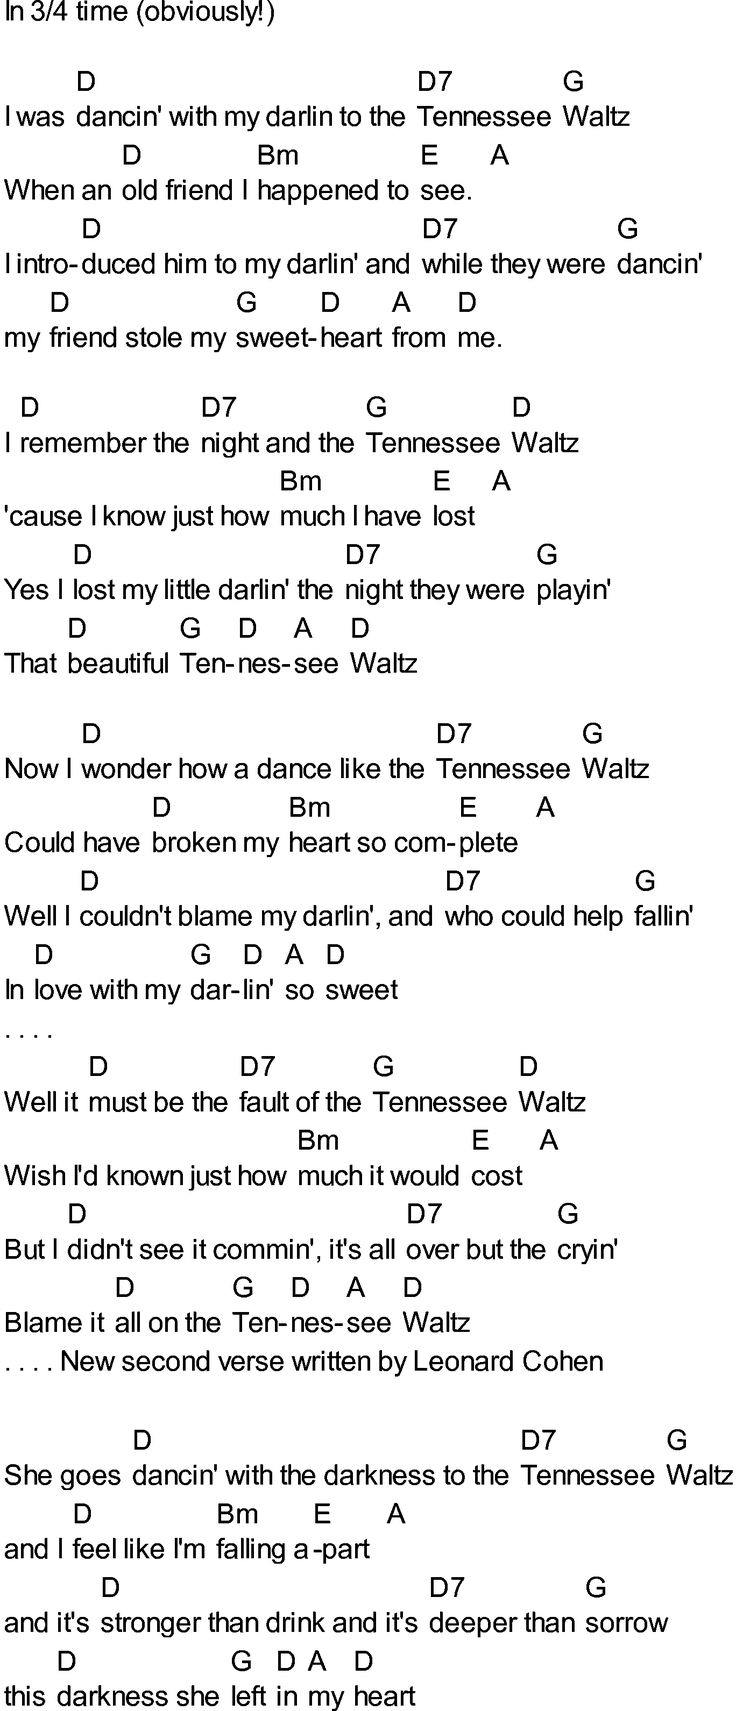 98 best guitar oldies images on pinterest music cartoons and songs music chords guitar chords music guitar ukulele music songs reading music guitar lessons banjo sheet music hexwebz Choice Image